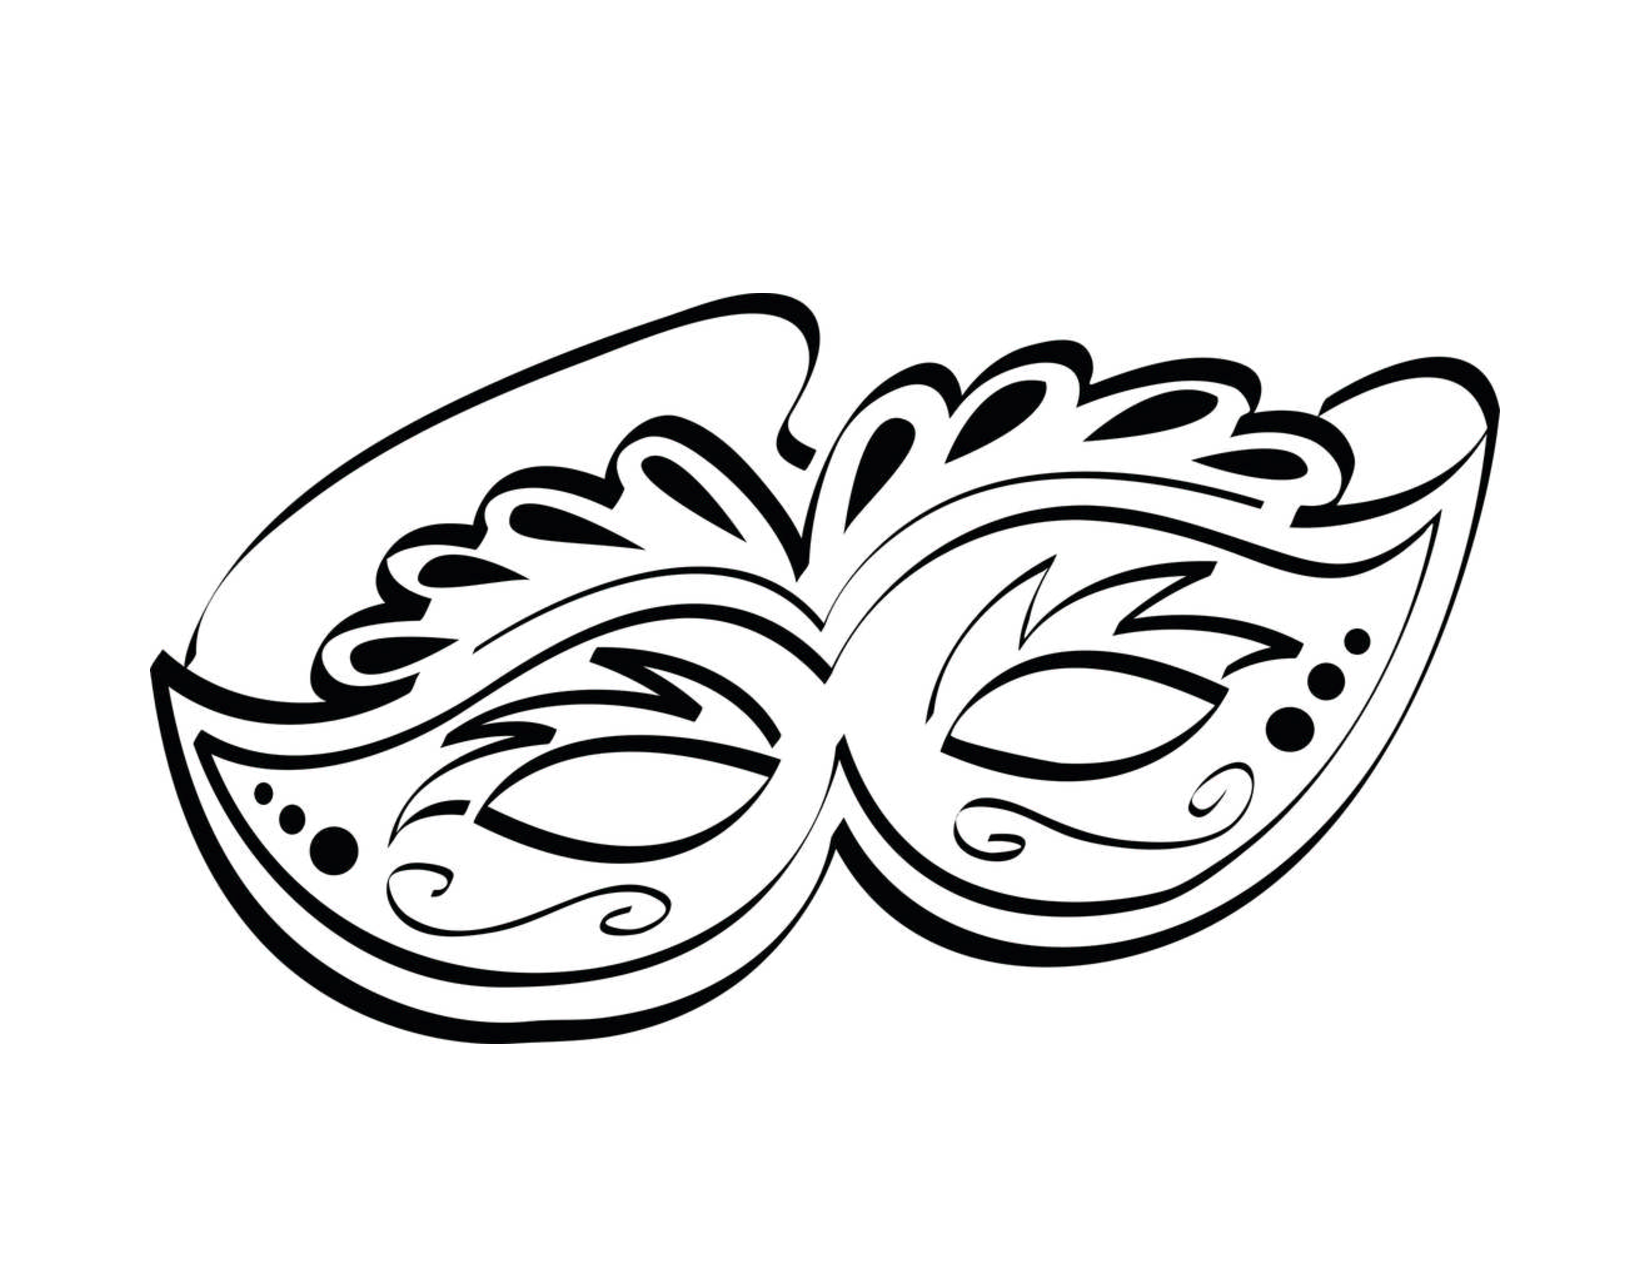 This is an image of Vibrant Mask Template for Adults